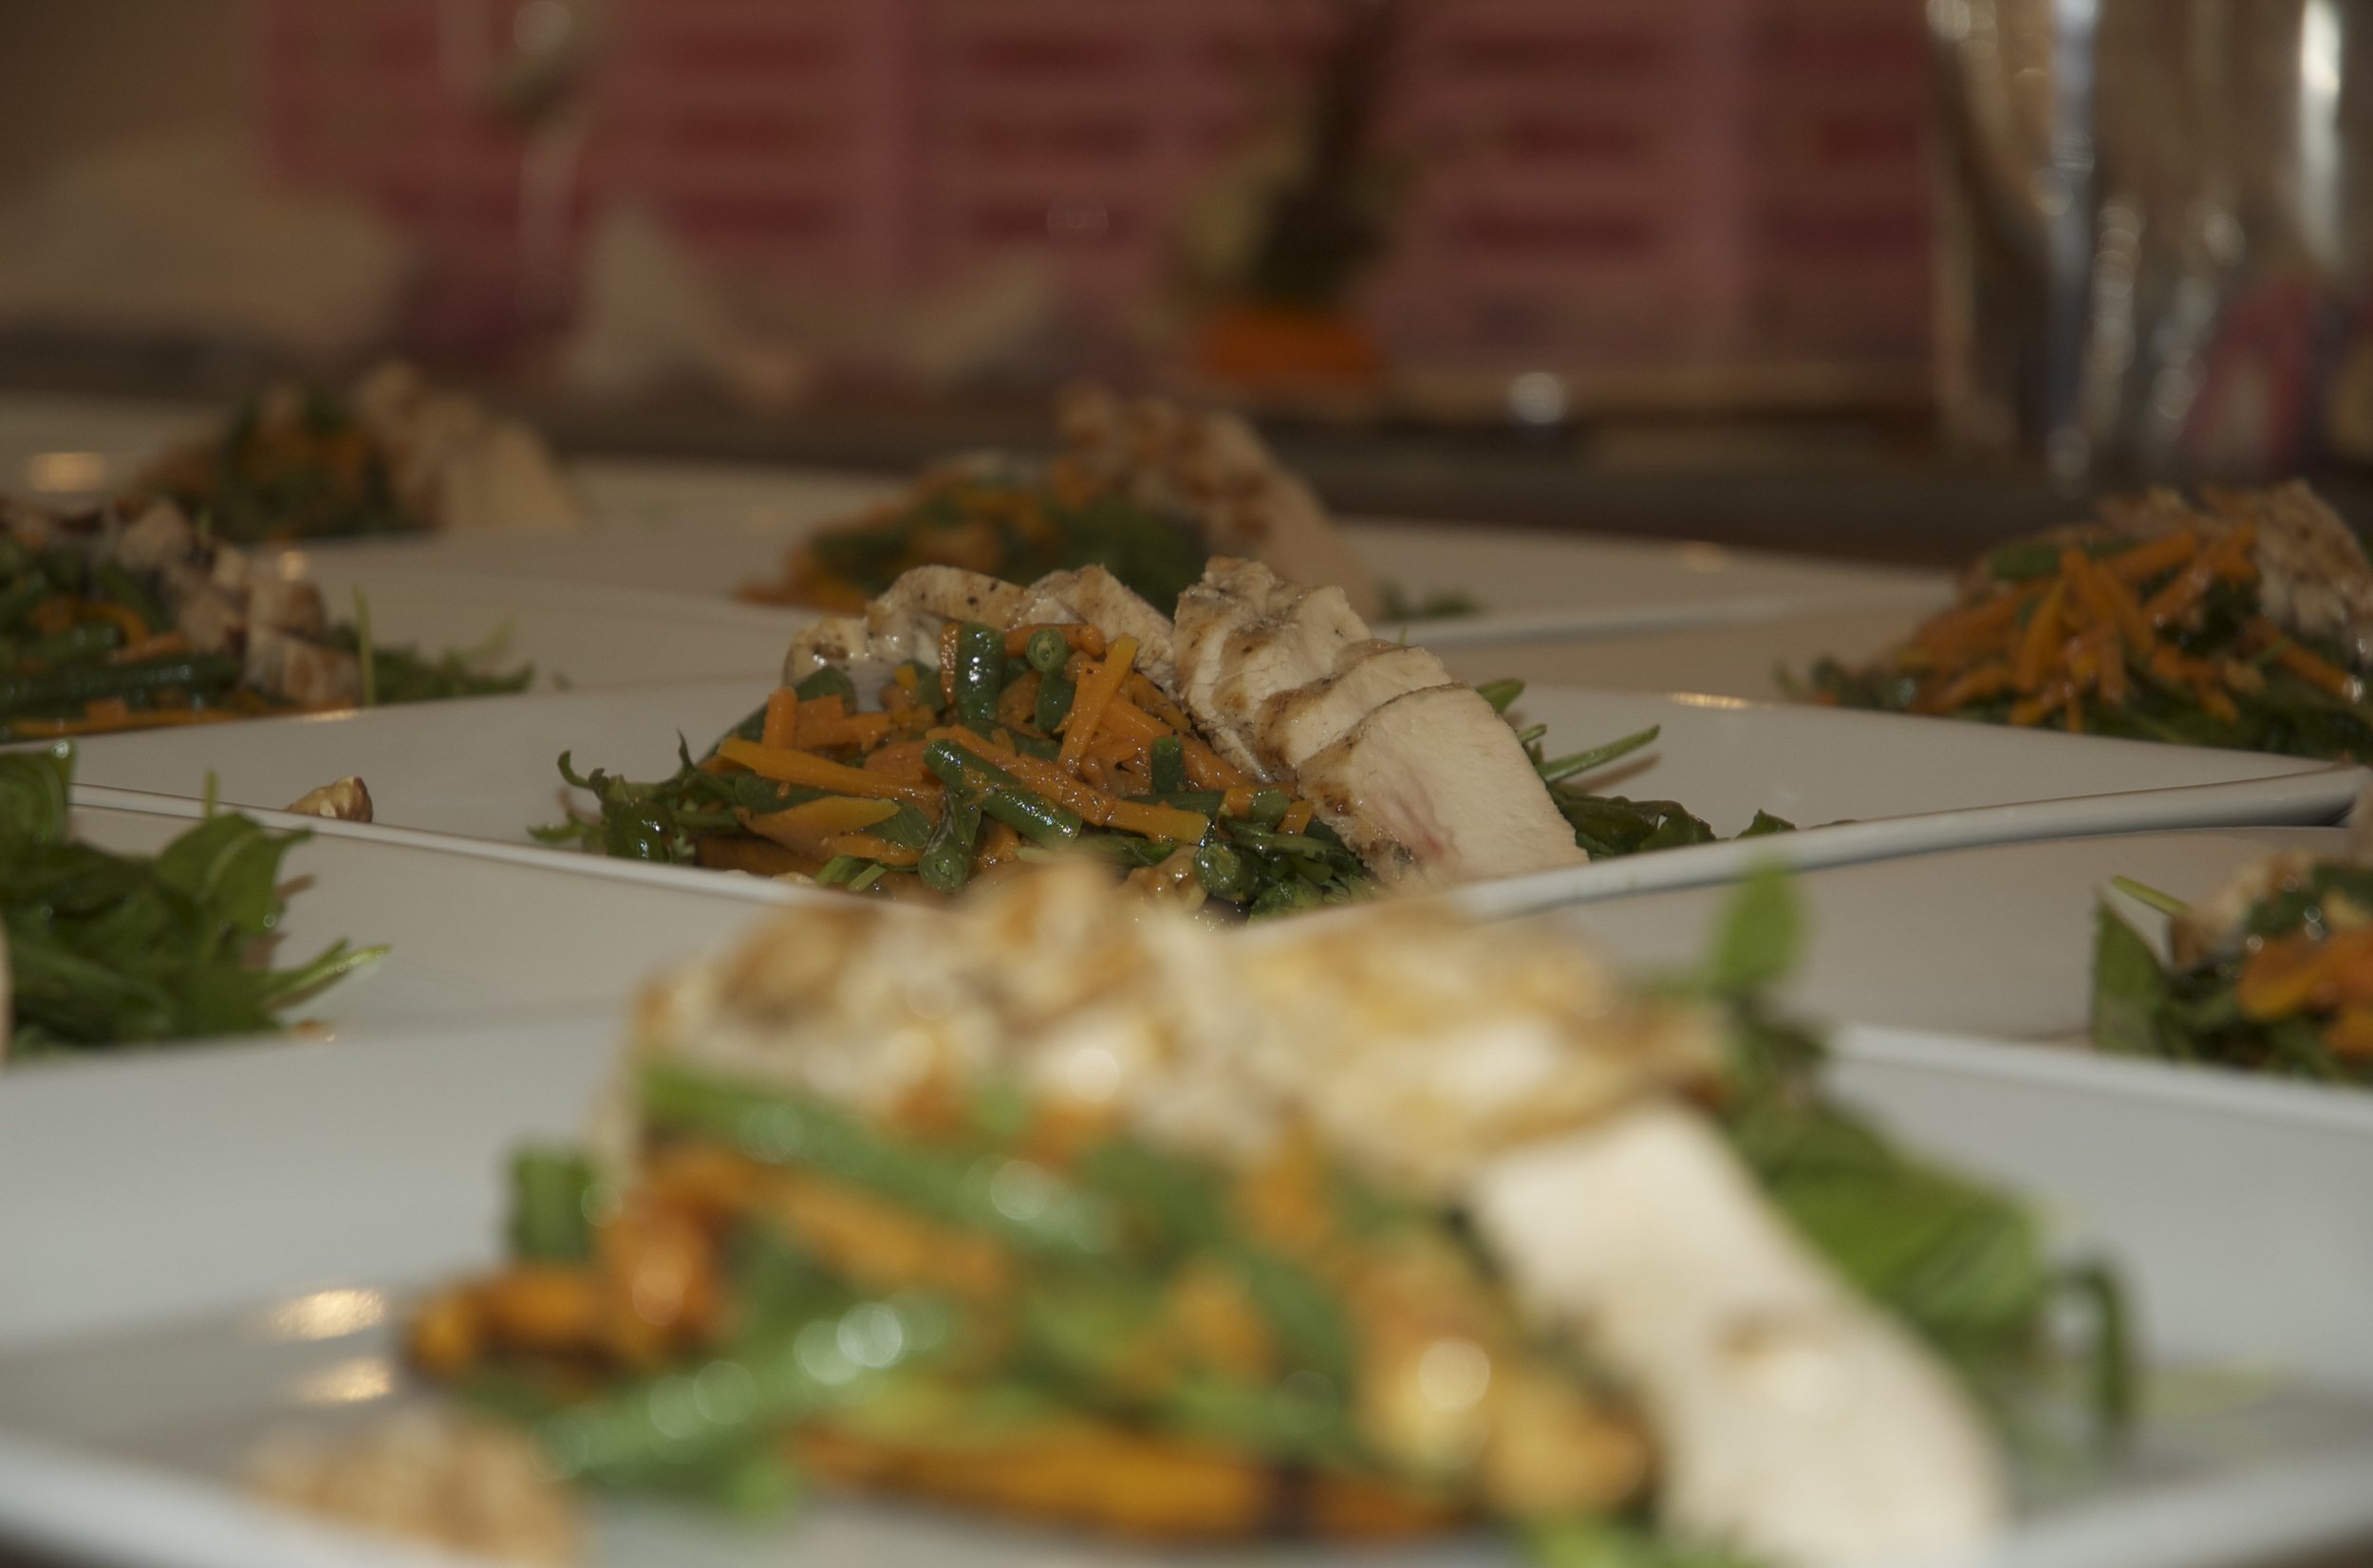 Grilled Chicken with Butternut Squash and Haricot Verts Salad